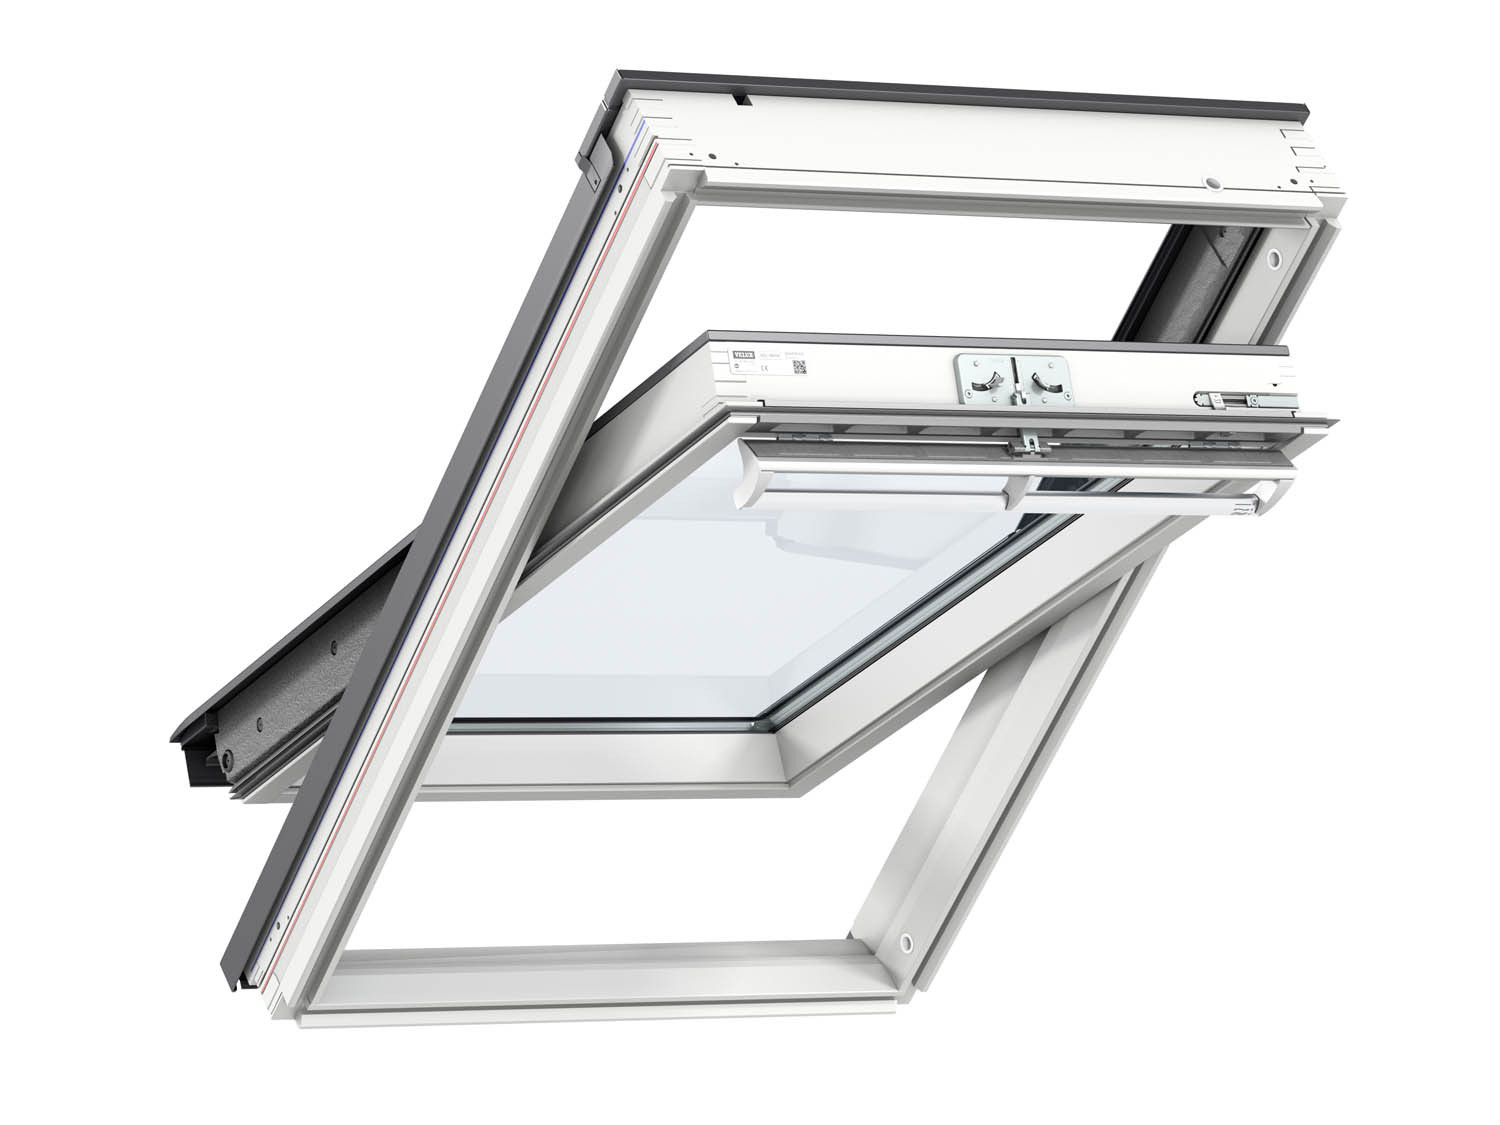 Velux 1.14m x 1.18m White Roof Window GGL2070 SK06